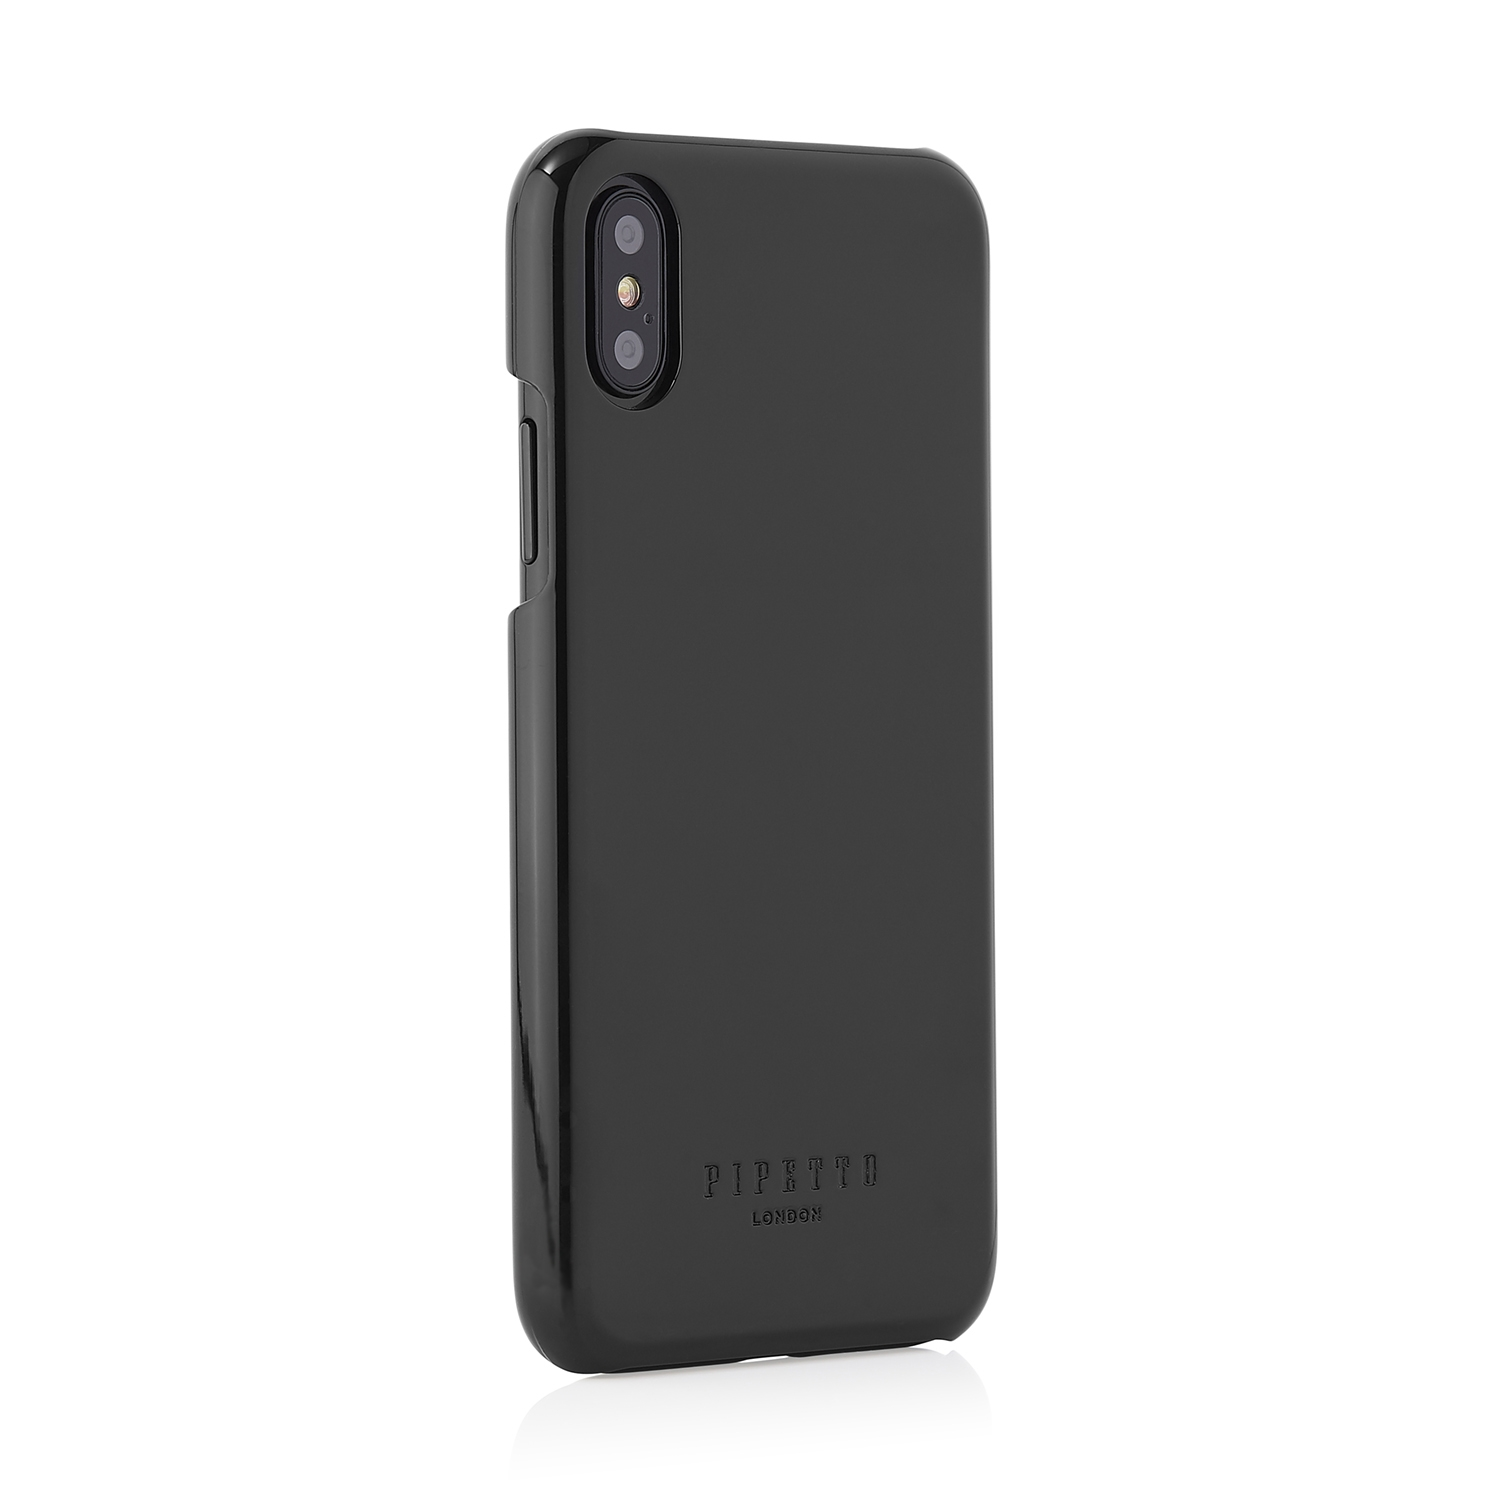 reputable site 3ee51 8a801 iPhone X/XS Case Magnetic Shell - Jet Black